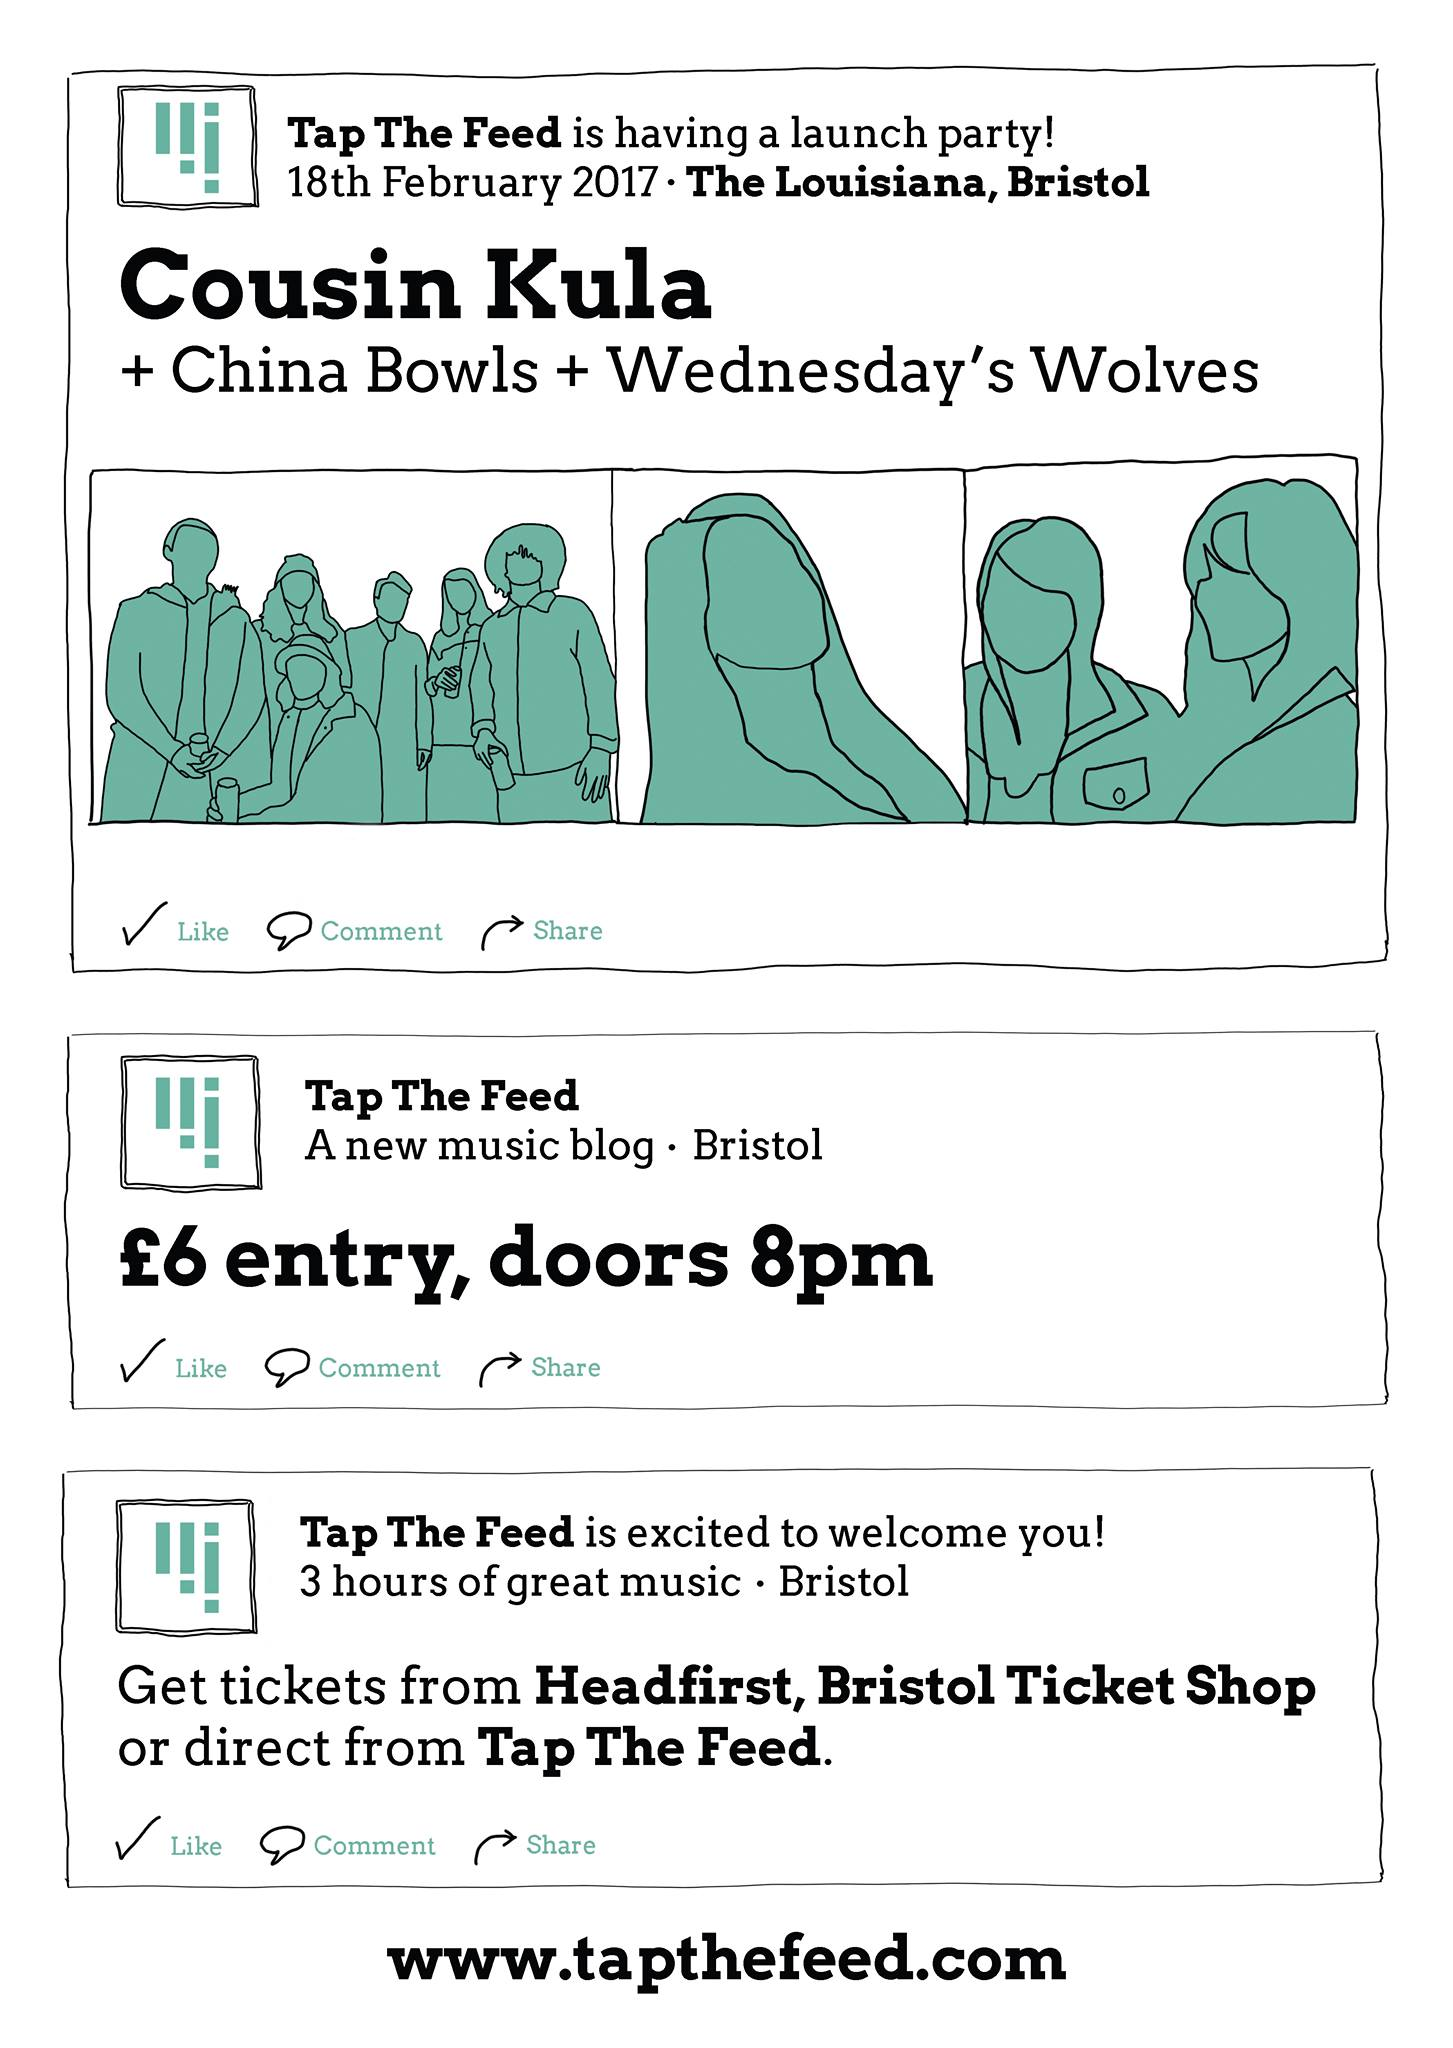 Tap The Feed launch party - Cousin Kula + China Bowls + Wednesday Wolves